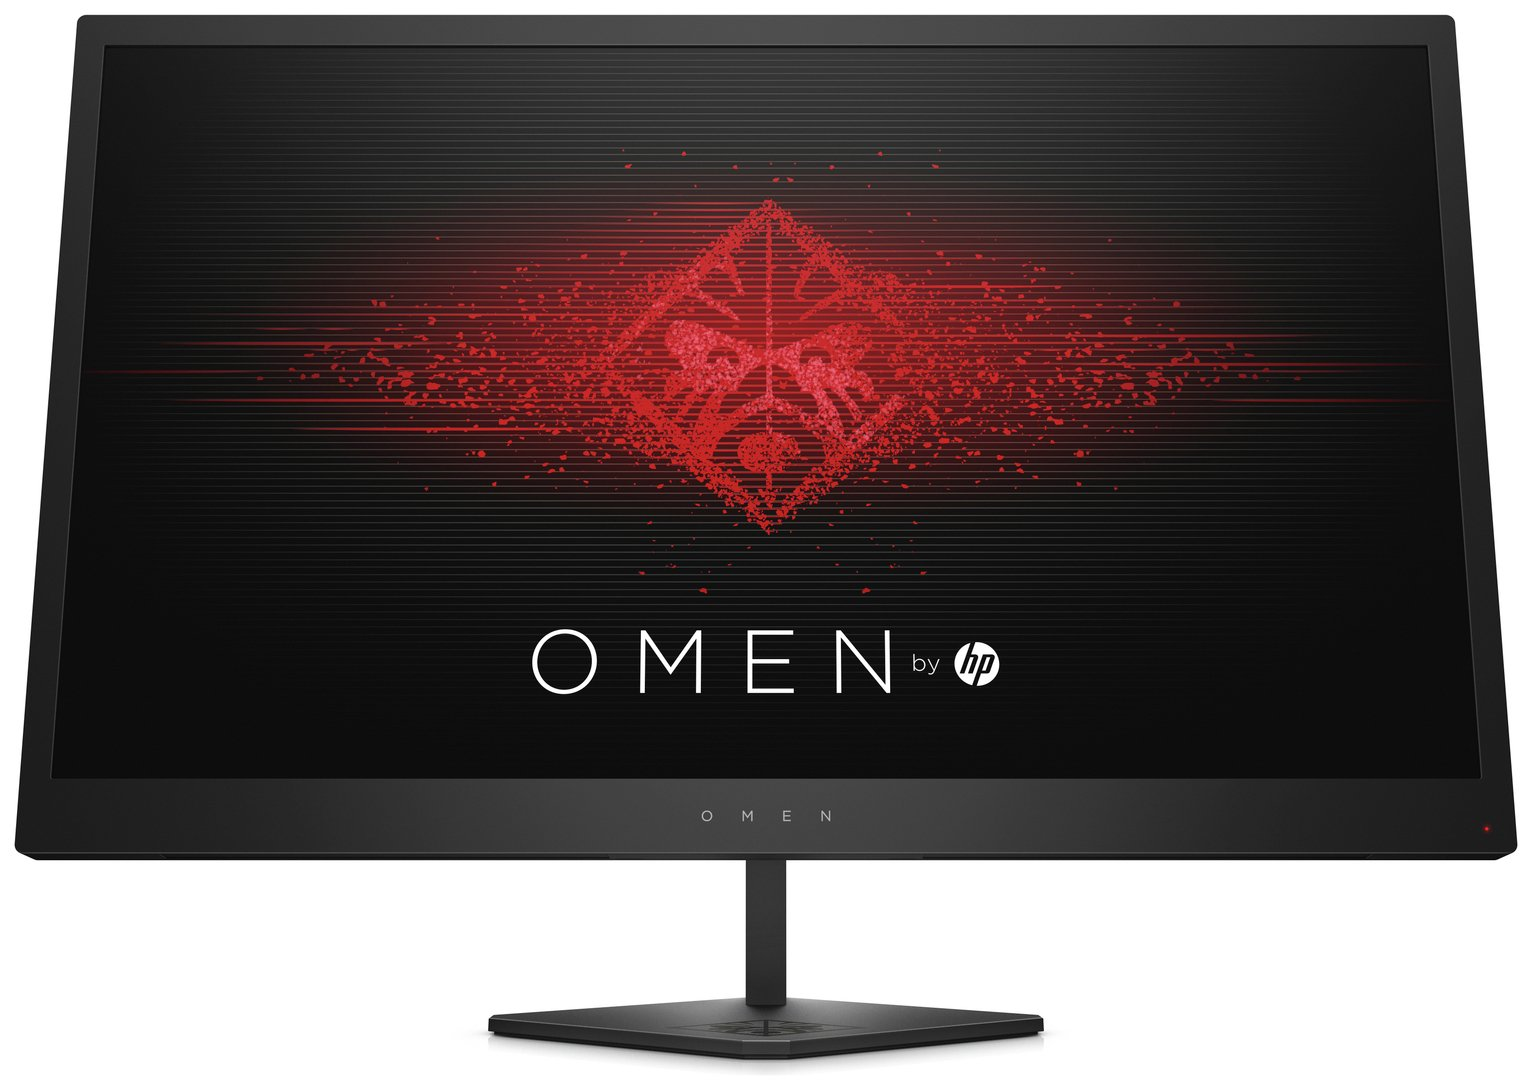 Omen 25 Inch LED Monitor - Black from HP